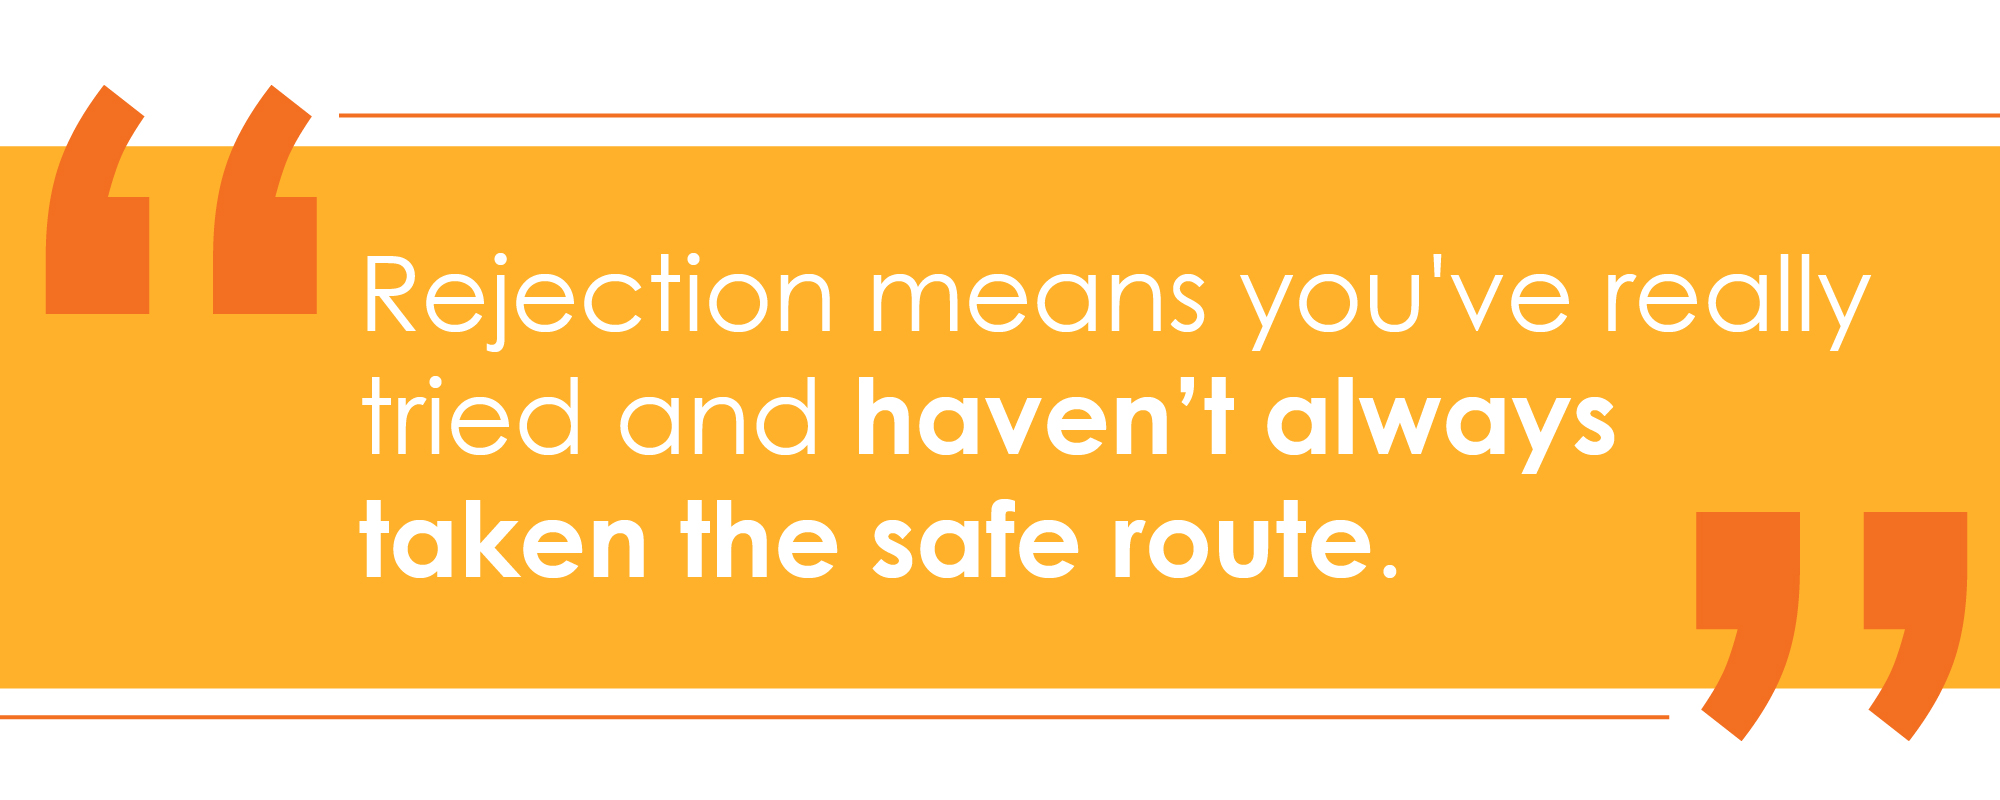 Rejection means you've really tried and haven't always taken the safe route.